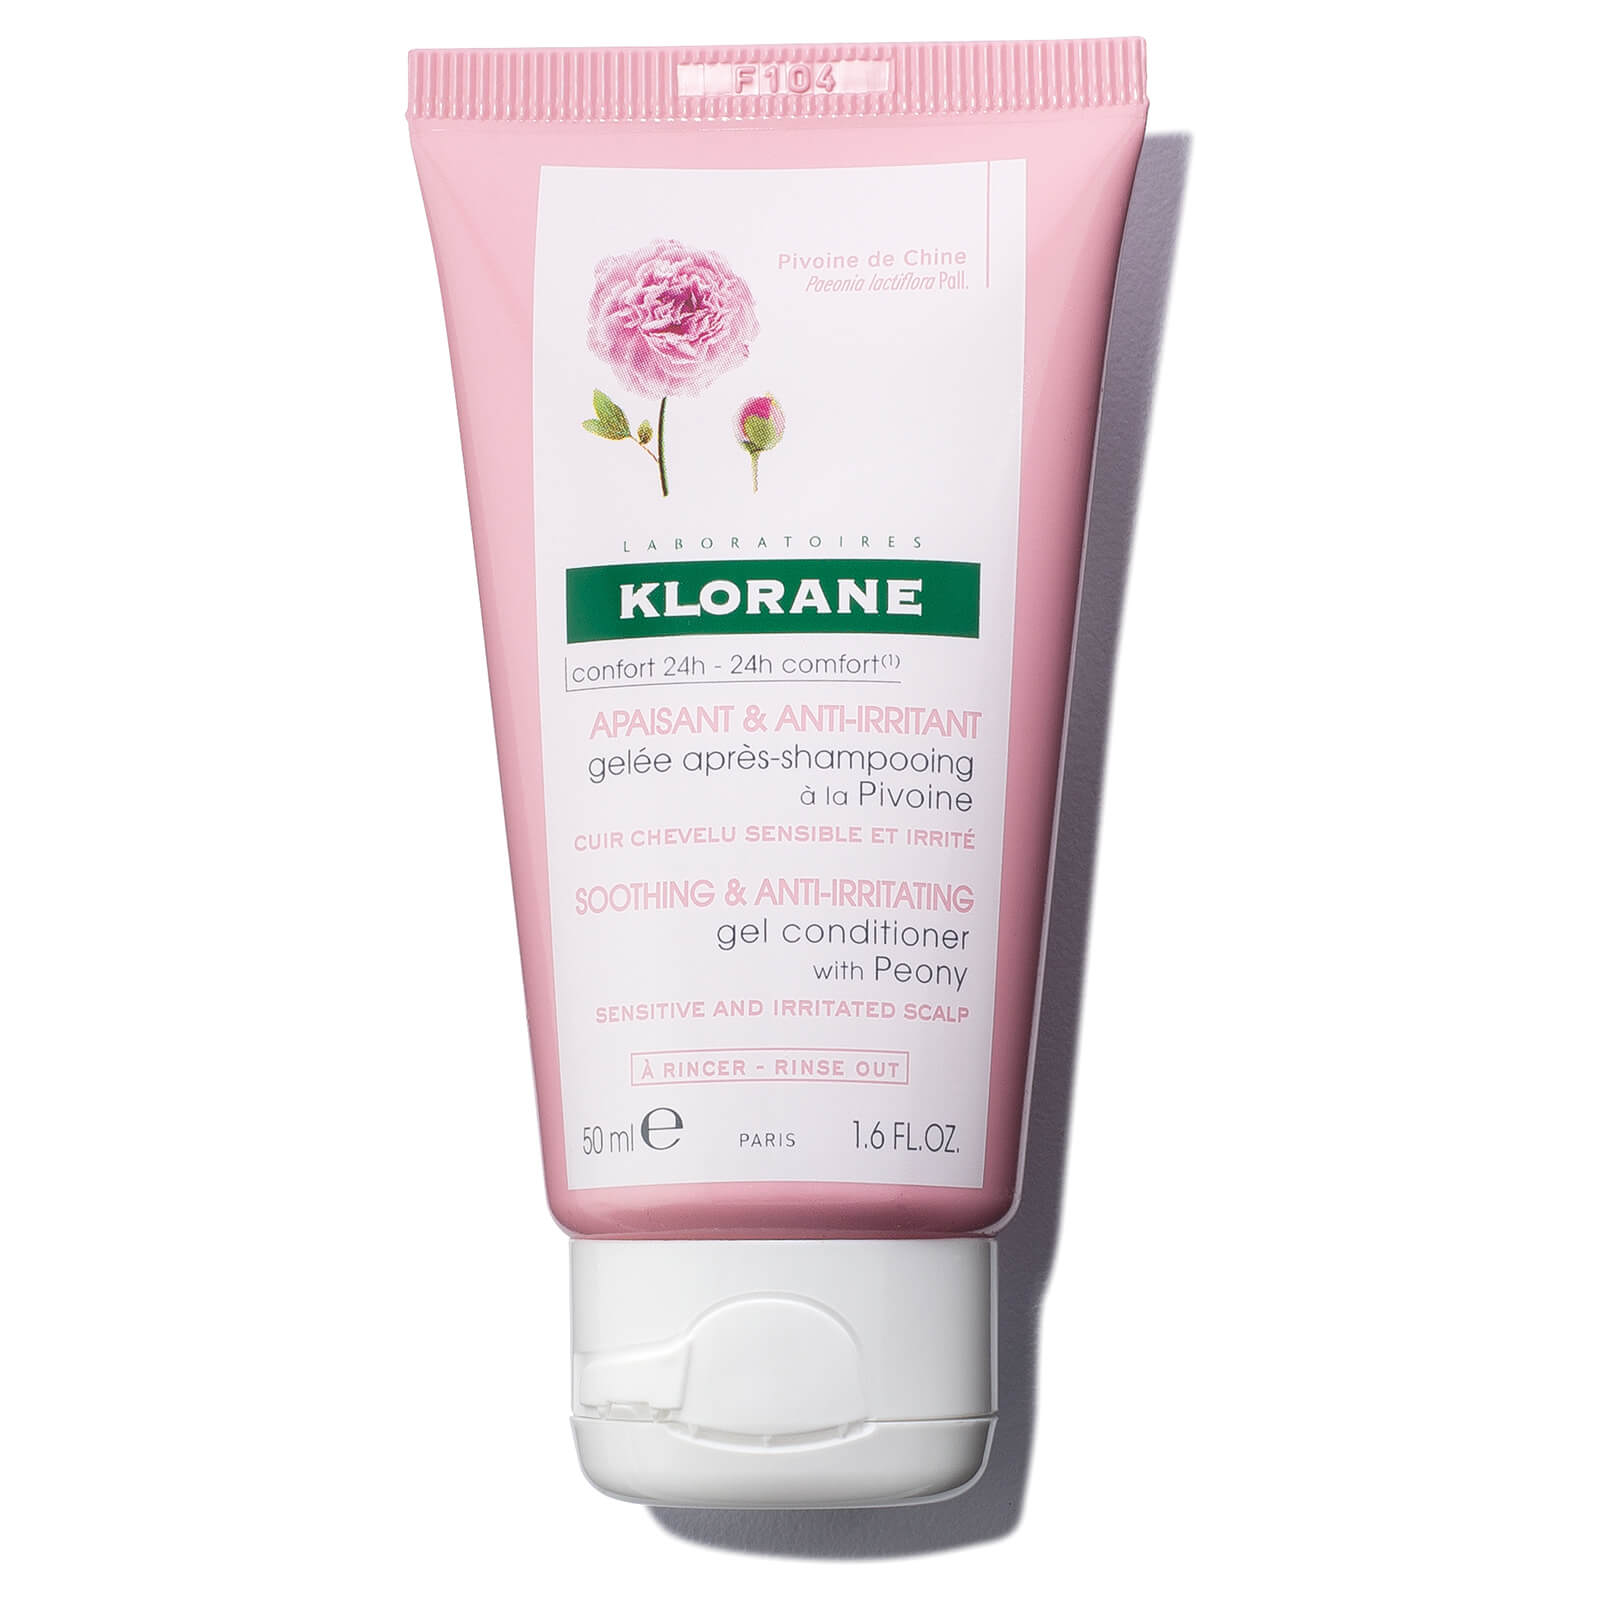 KLORANE Conditioner with Peony 1.6 fl.oz.